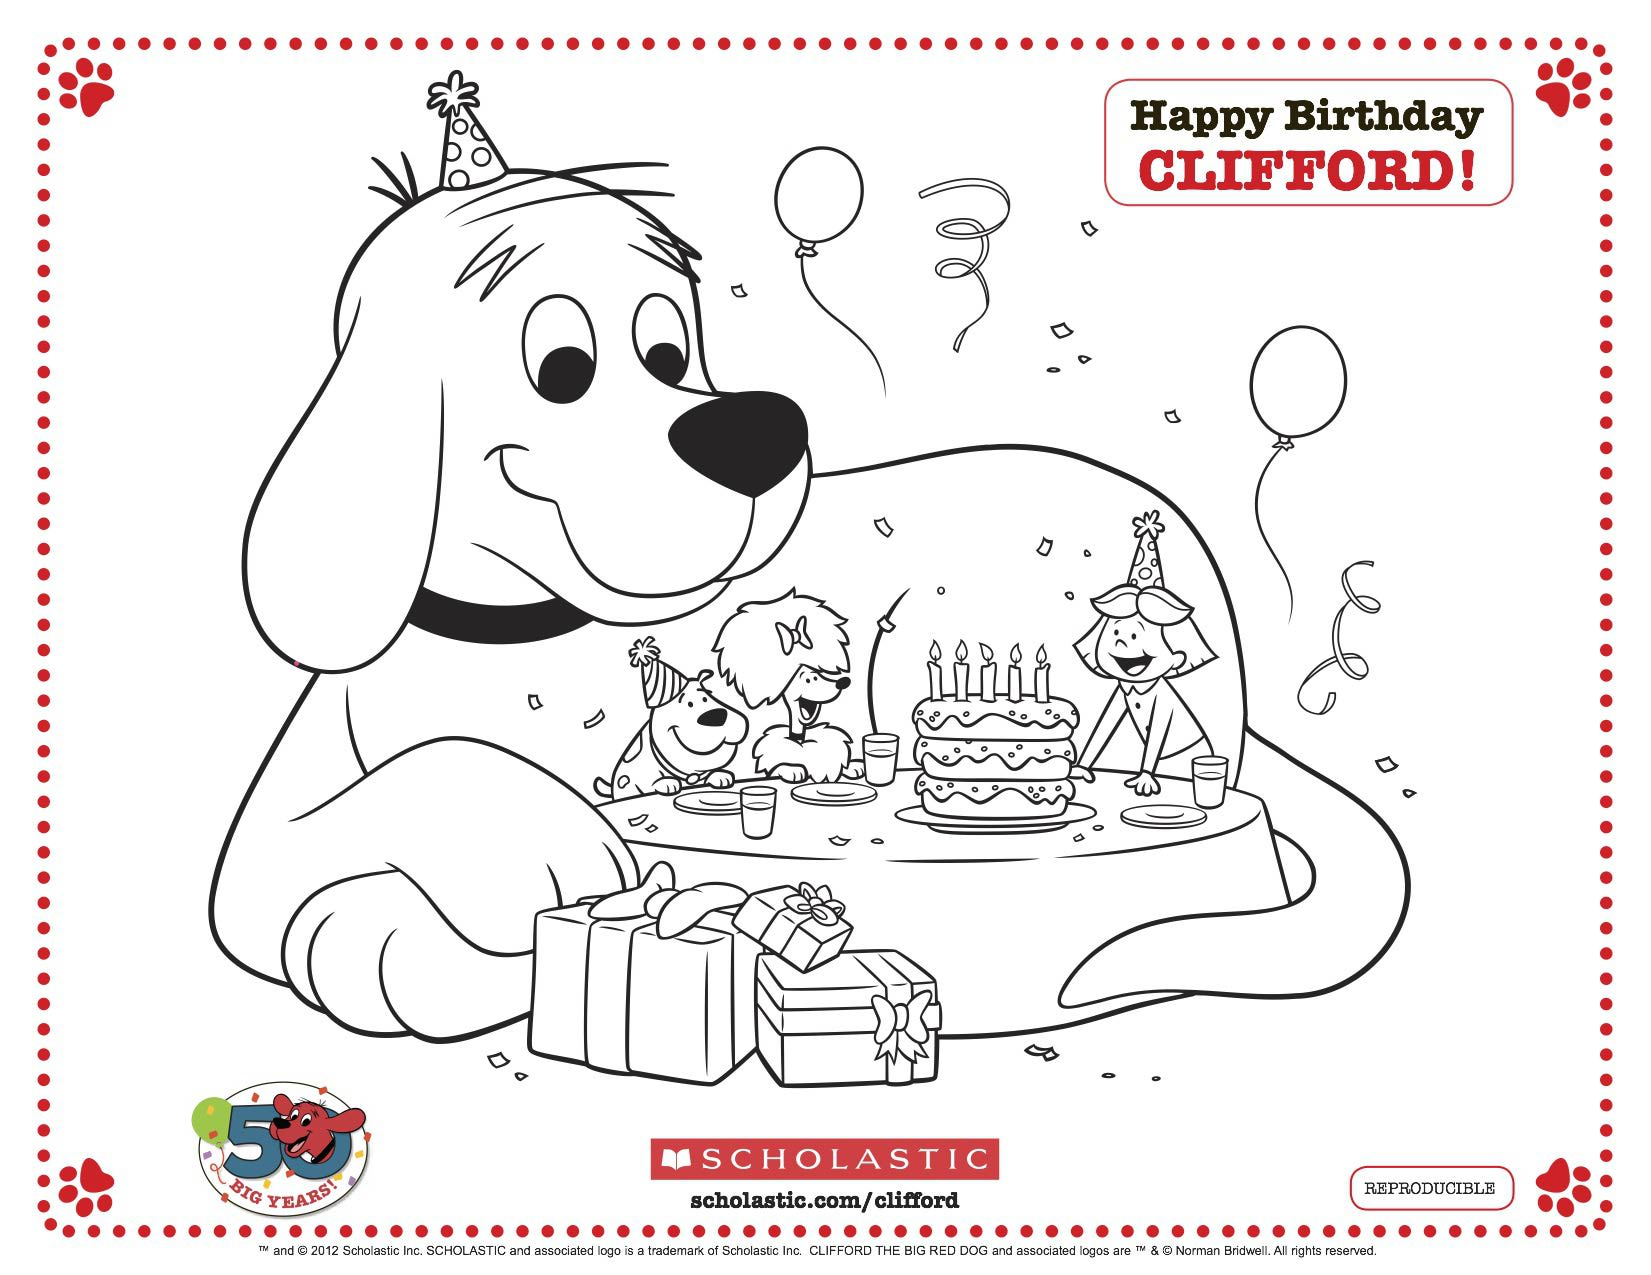 clifford the big red dog birthday card ; clifford_partytable